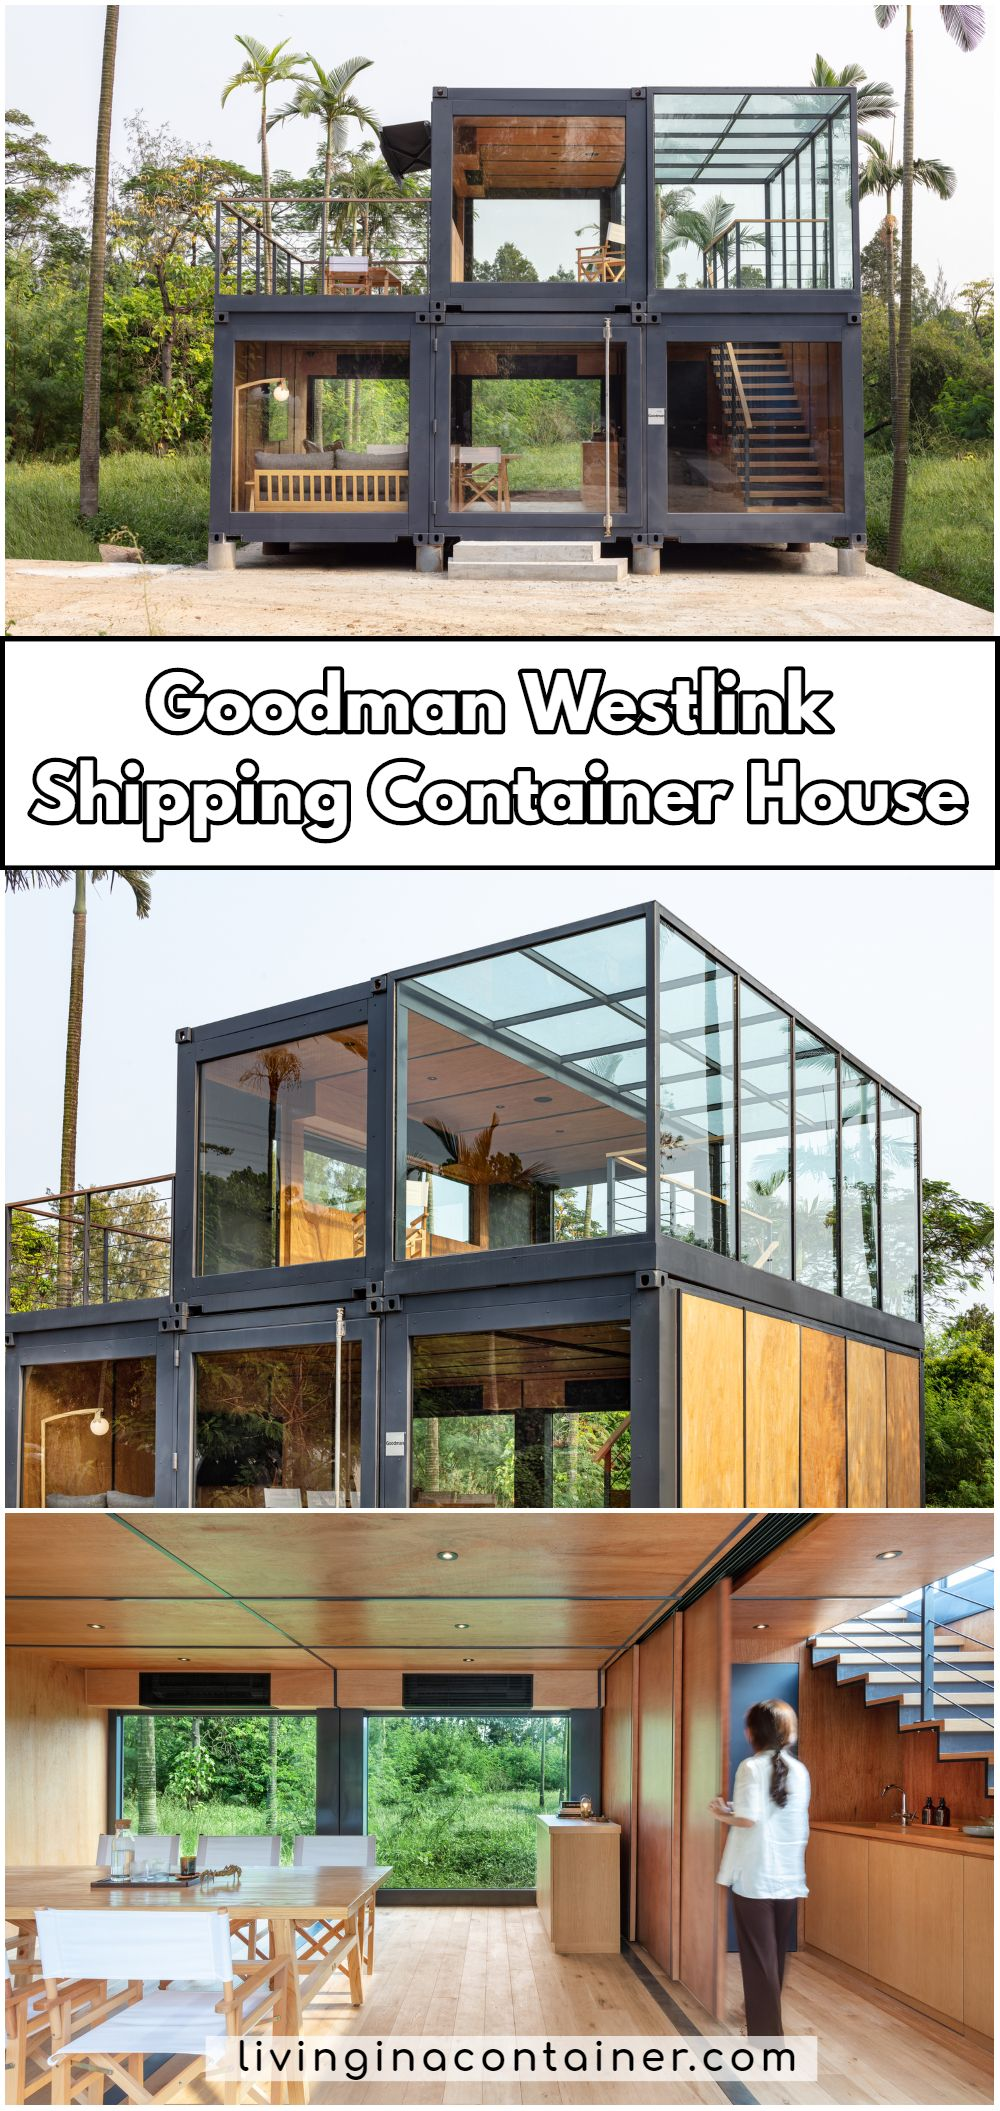 Goodman Westlink Shipping Container House